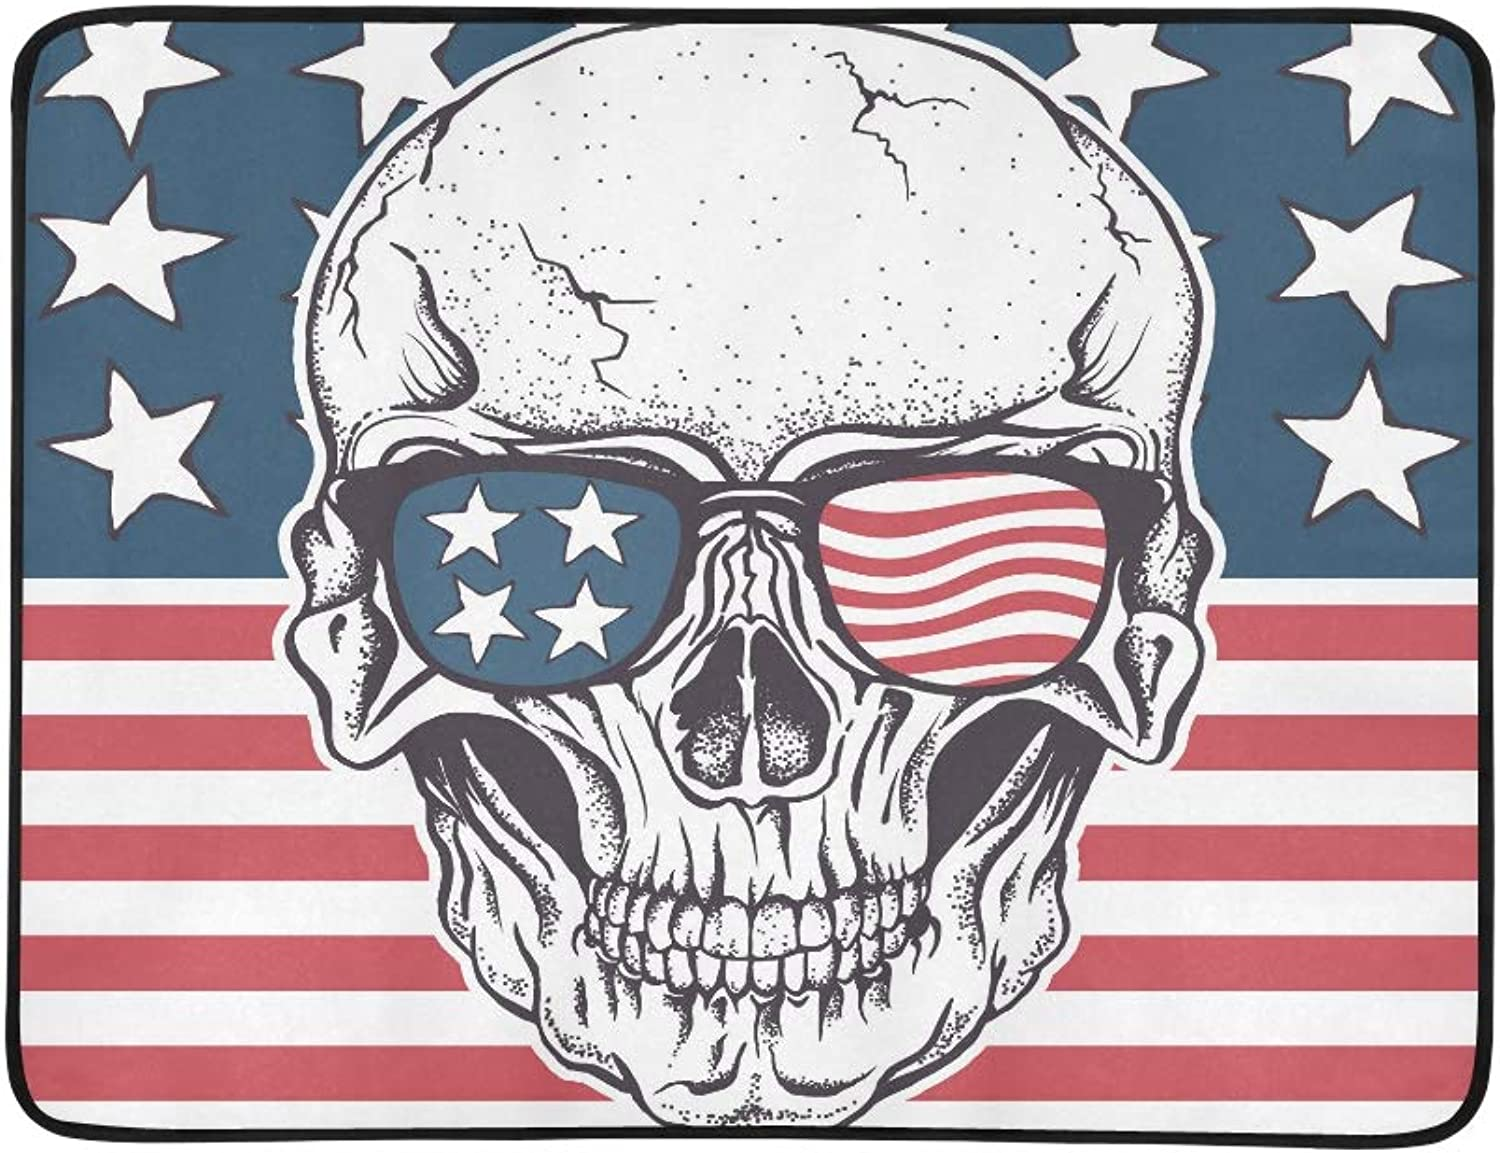 American Skull in Sunglasses On USA Flag Pattern Portable and Foldable Blanket Mat 60x78 Inch Handy Mat for Camping Picnic Beach Indoor Outdoor Travel